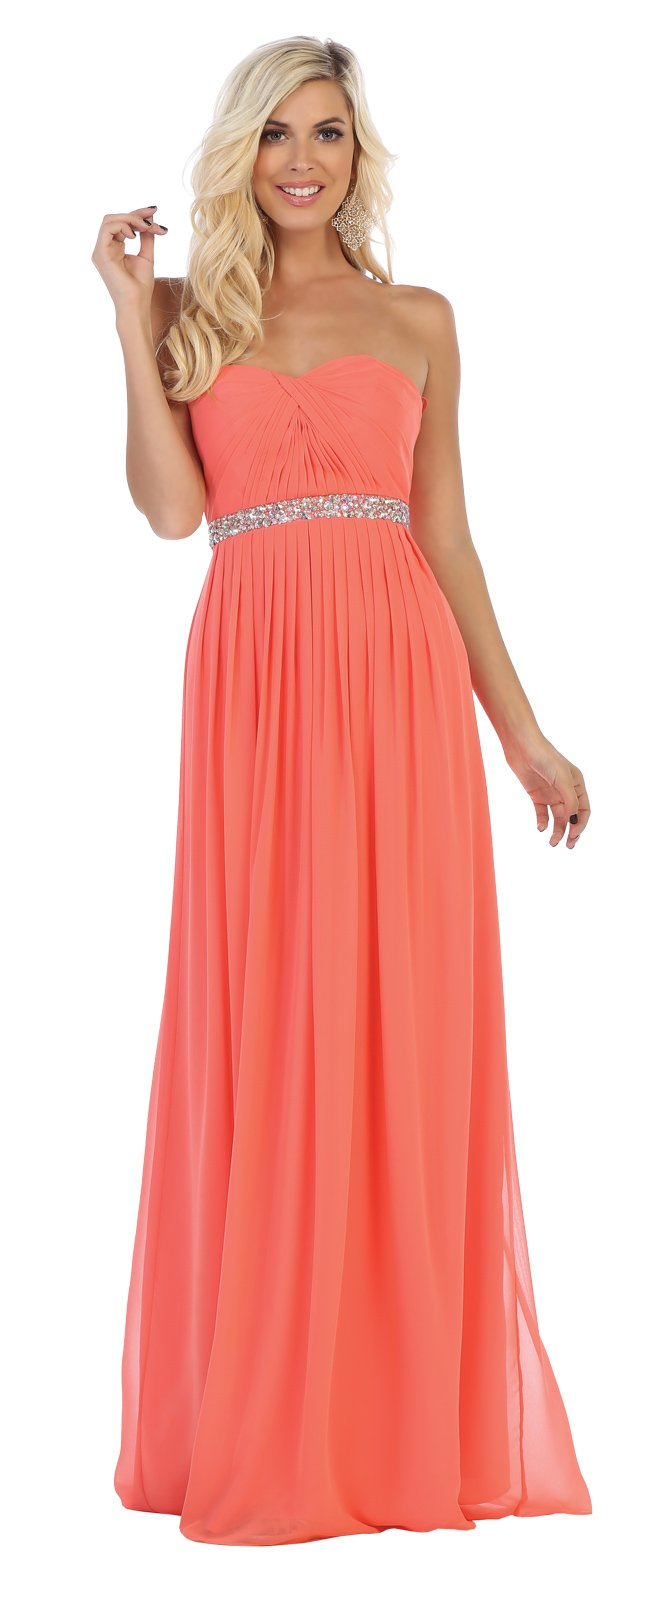 Black Lace Up Back Long Chiffon Skirt Prom Dress With Jeweled Belt